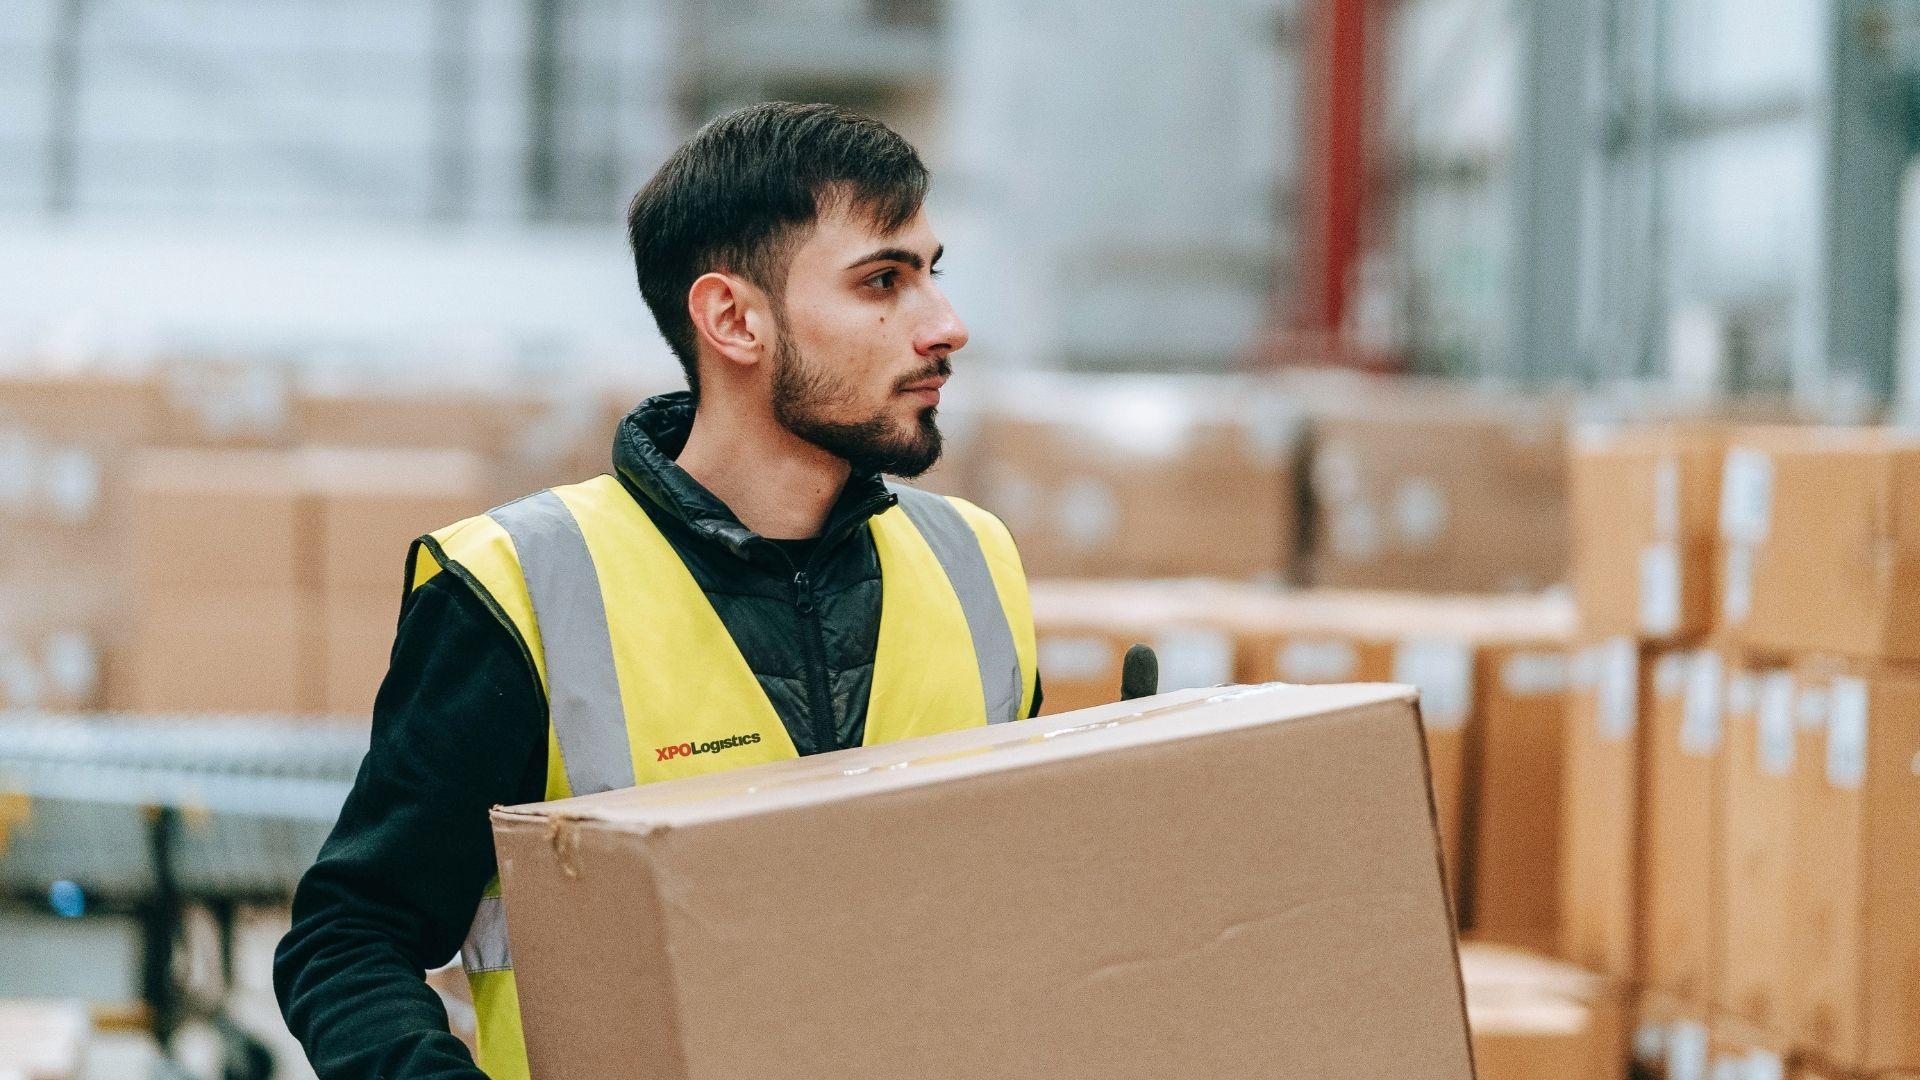 XPO employee holding a box in a warehouse